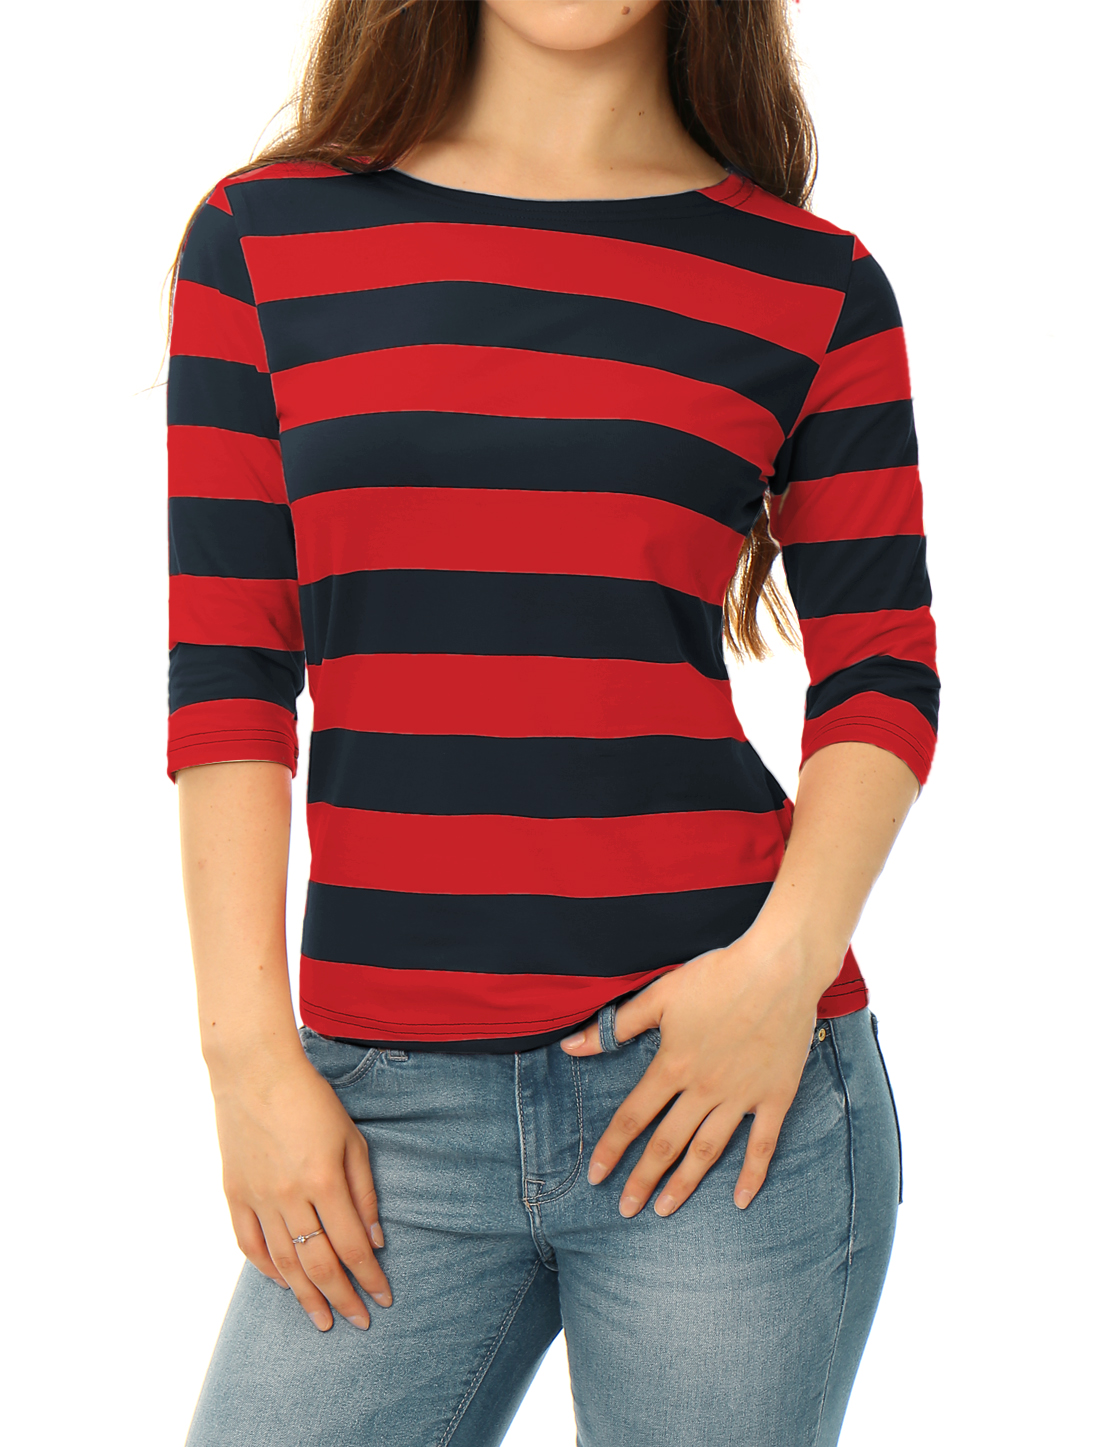 Women Half Sleeves Boat Neck Slim Fit Stripes Tee Red Blue XS